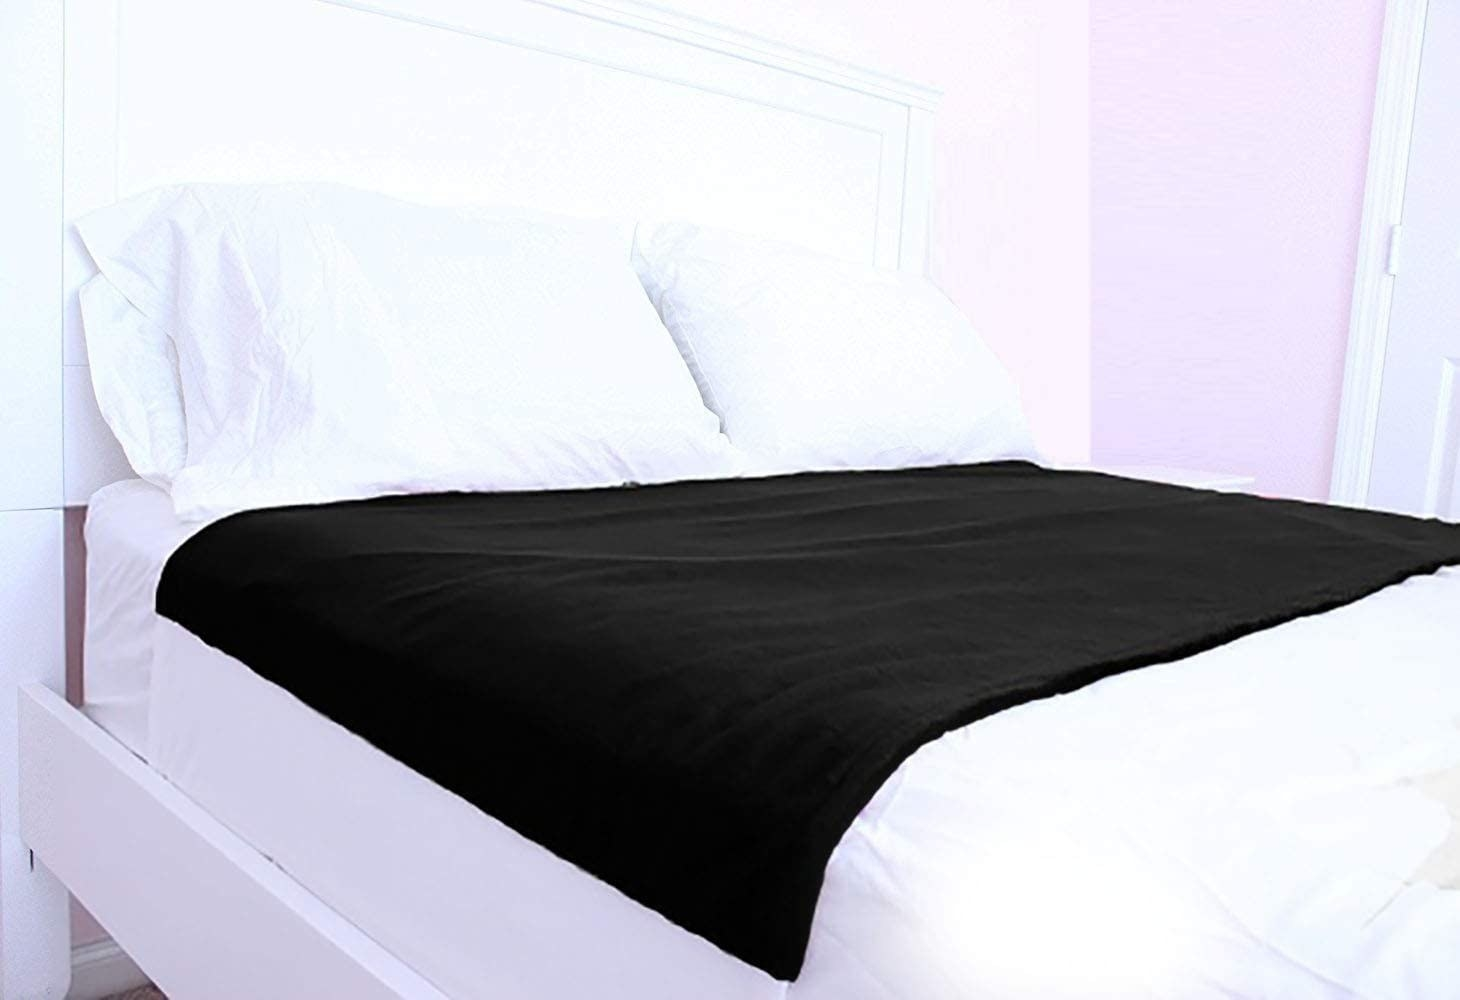 the black cycleliners period bed sheet protector on a bed